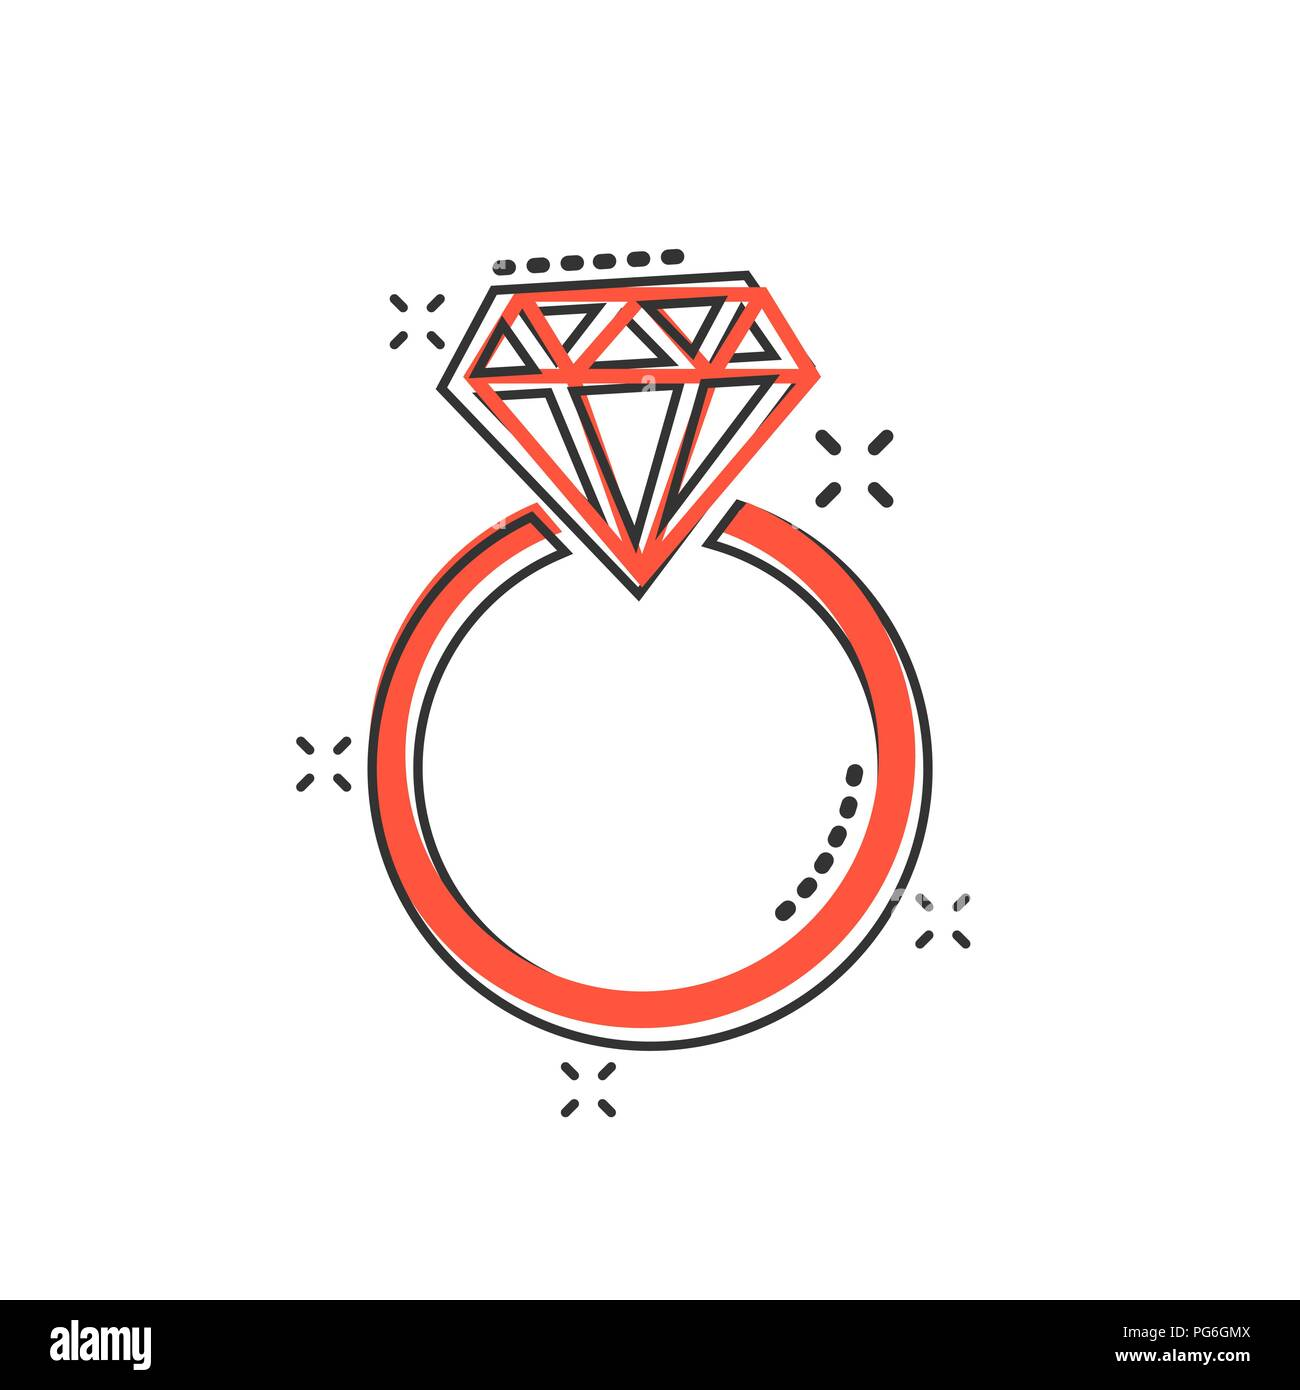 Hochzeit Comic Vektor Cartoon Engagement Ring Mit Diamant Symbol Im Comic Stil